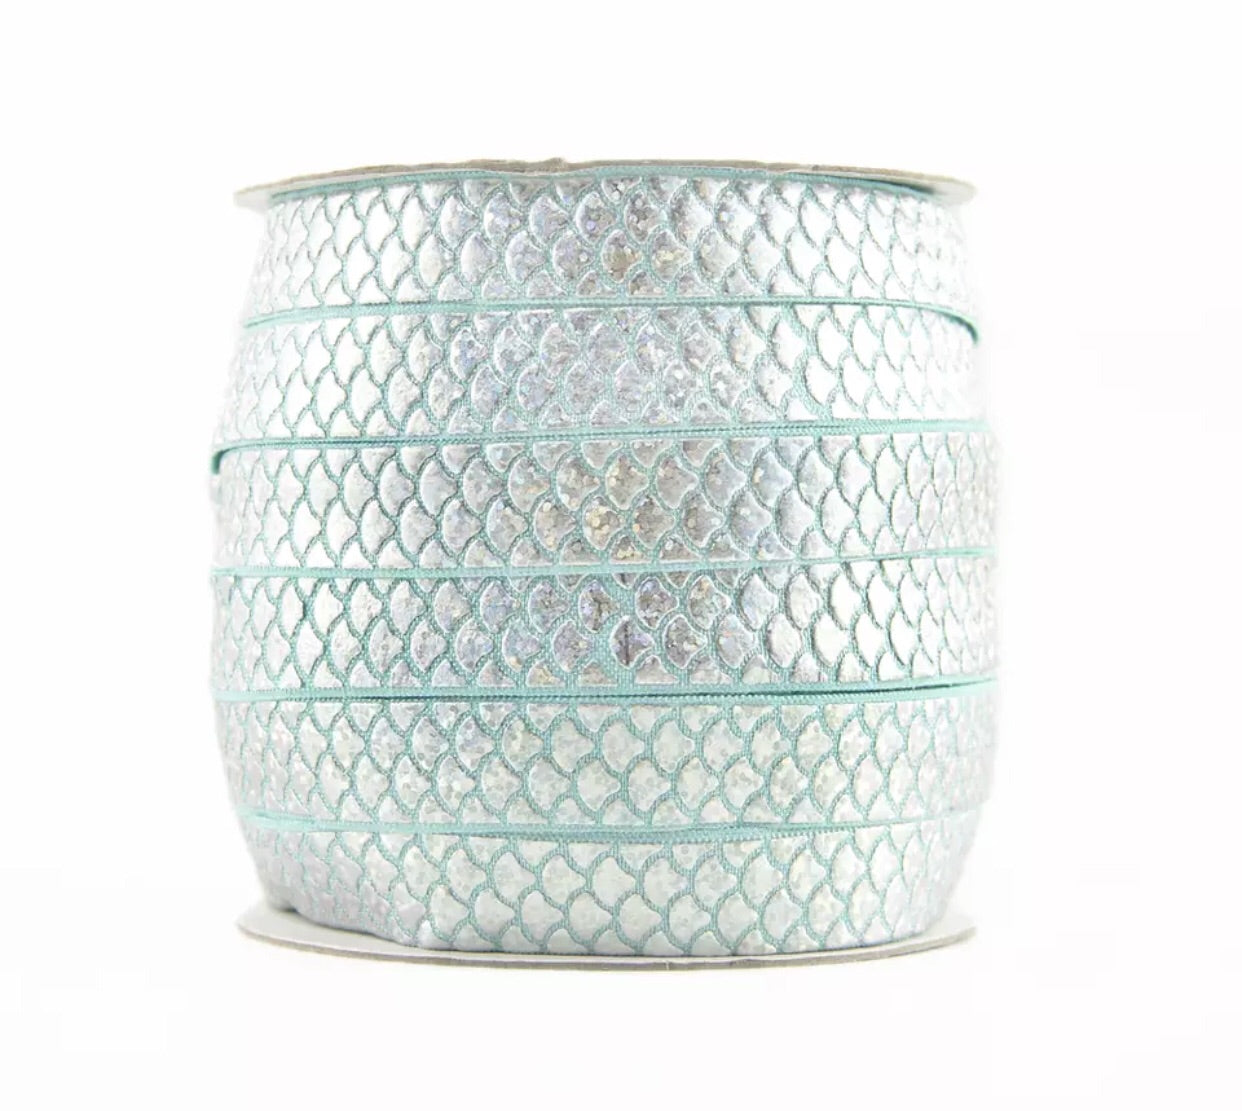 Elastic - Mermaid Scale Silver on Aqua - shabbyflowers.com